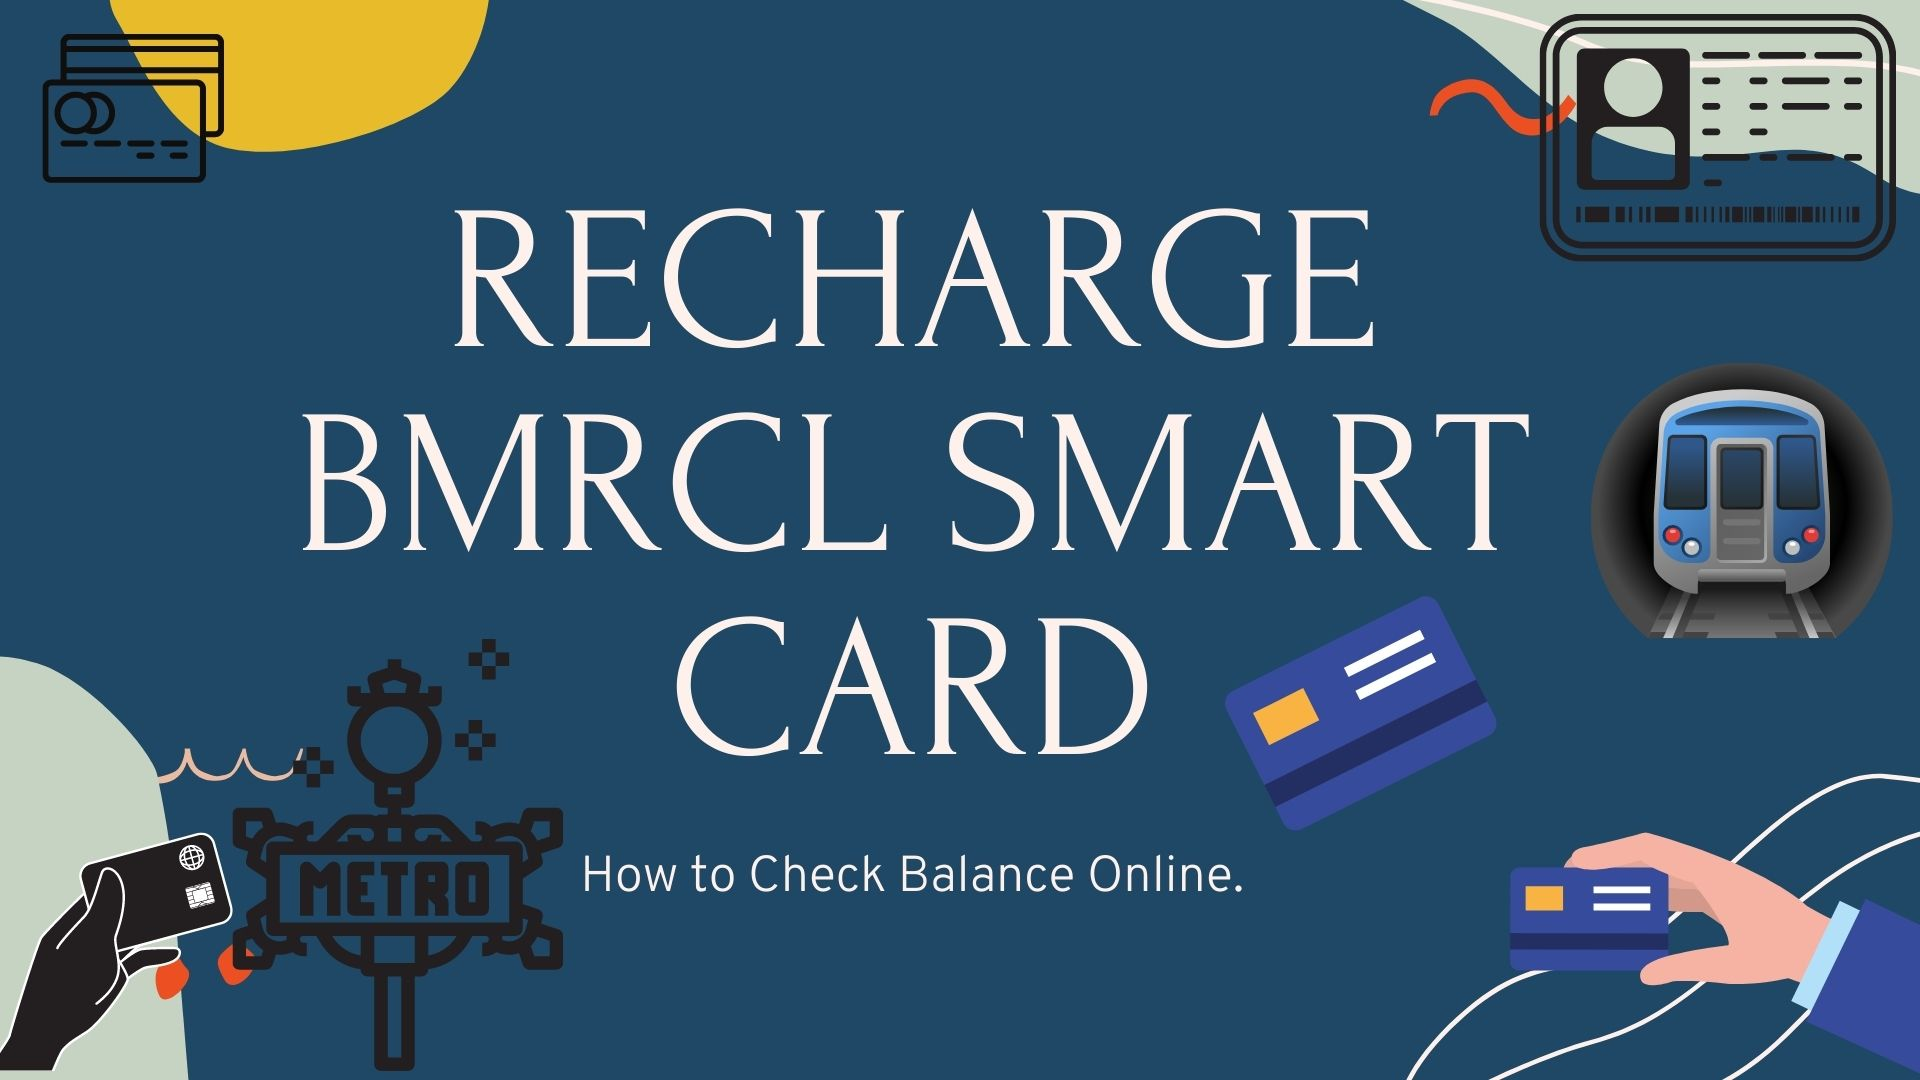 Recharge Bmrcl Smart Card